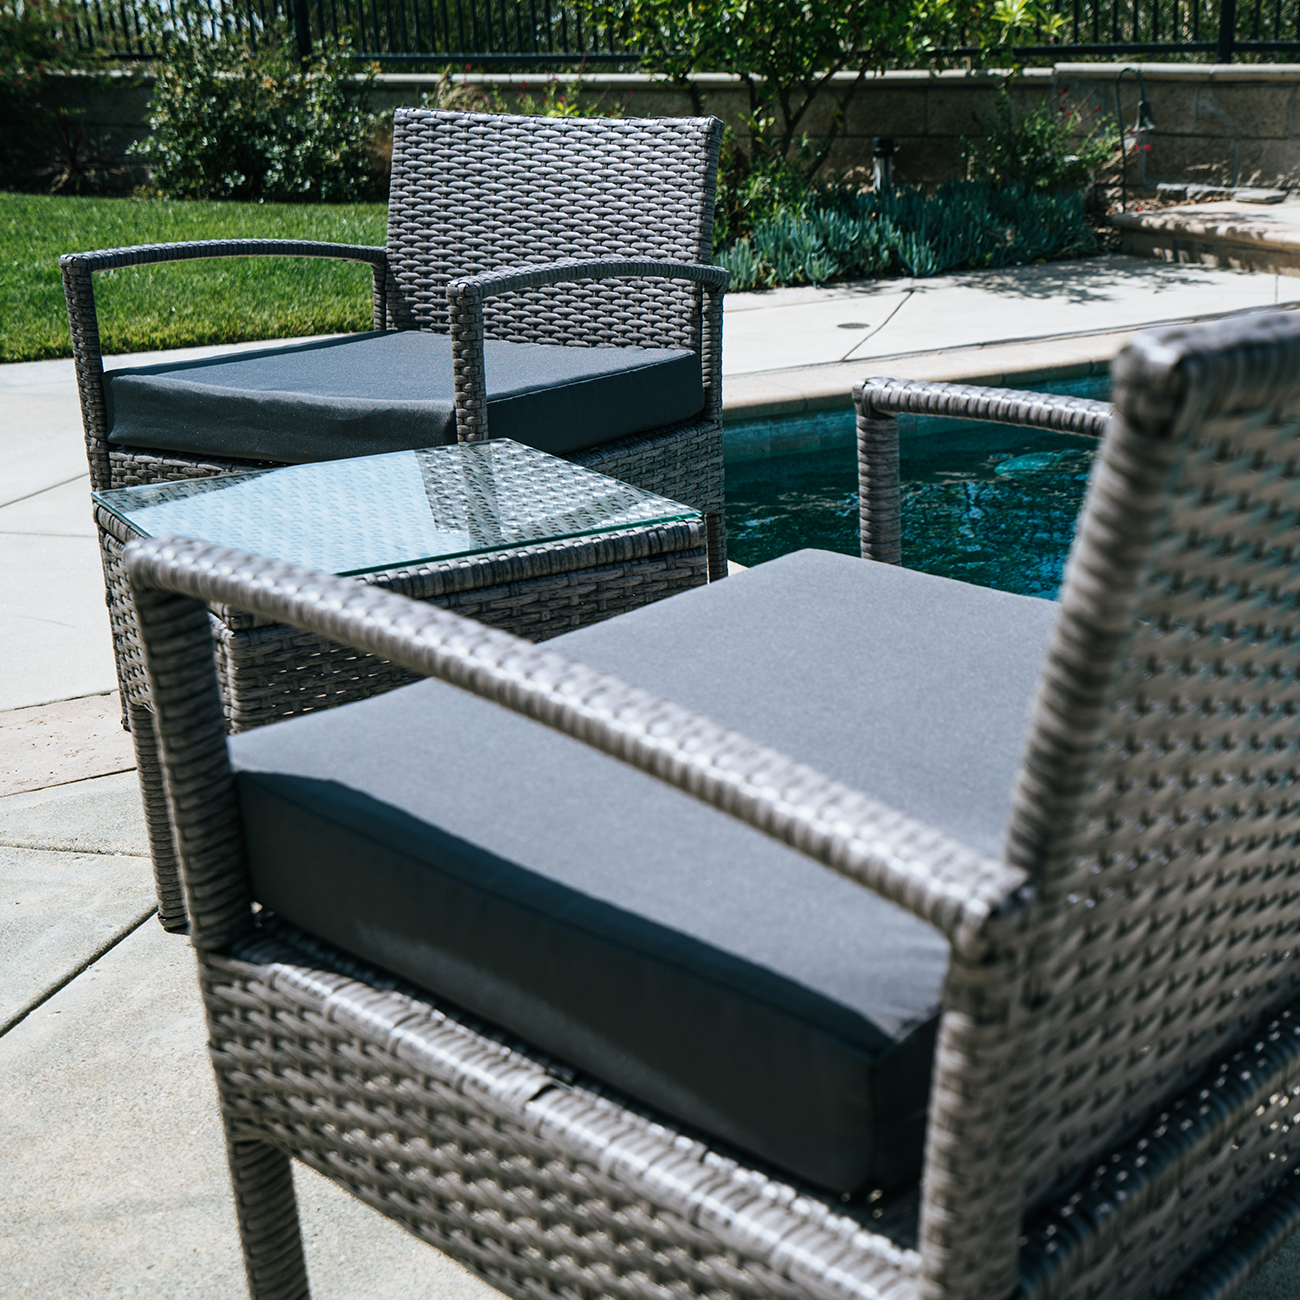 3-PCS-Outdoor-Rattan-Wicker-Patio-Chat-Chairs-amp-Table-Furniture-Set-Lounge thumbnail 12